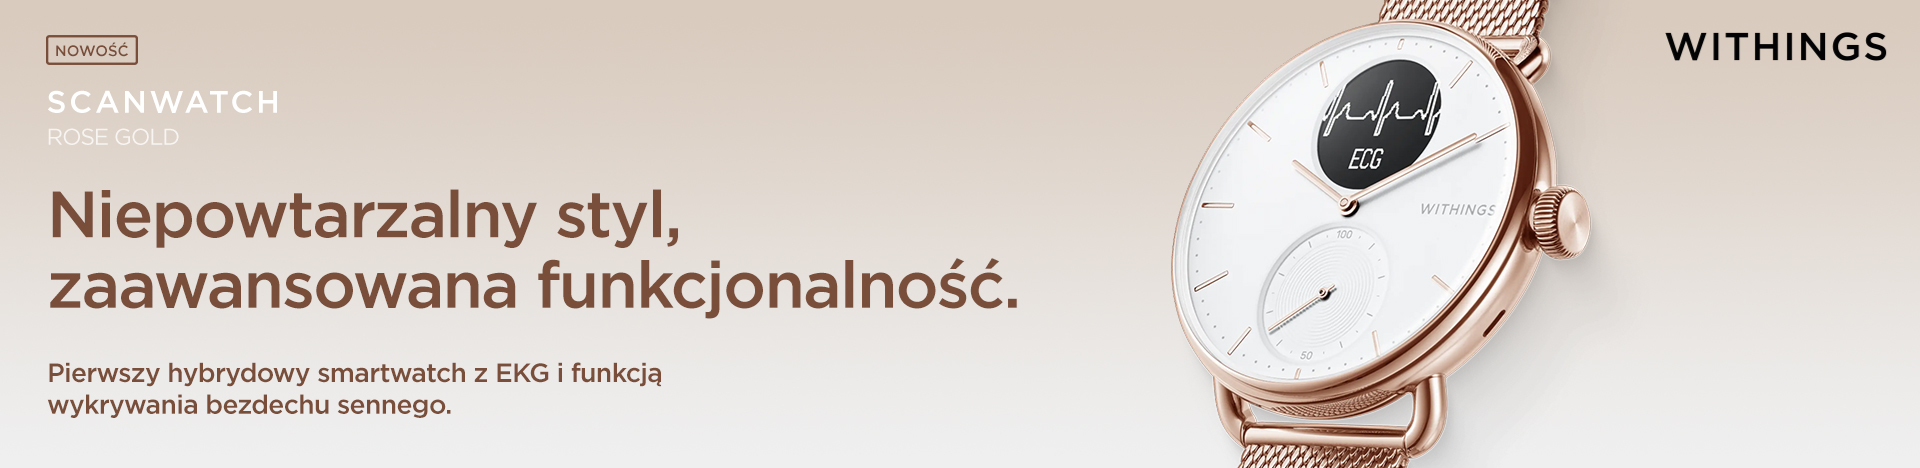 Withings Scanwatch 38mm Rose Gold